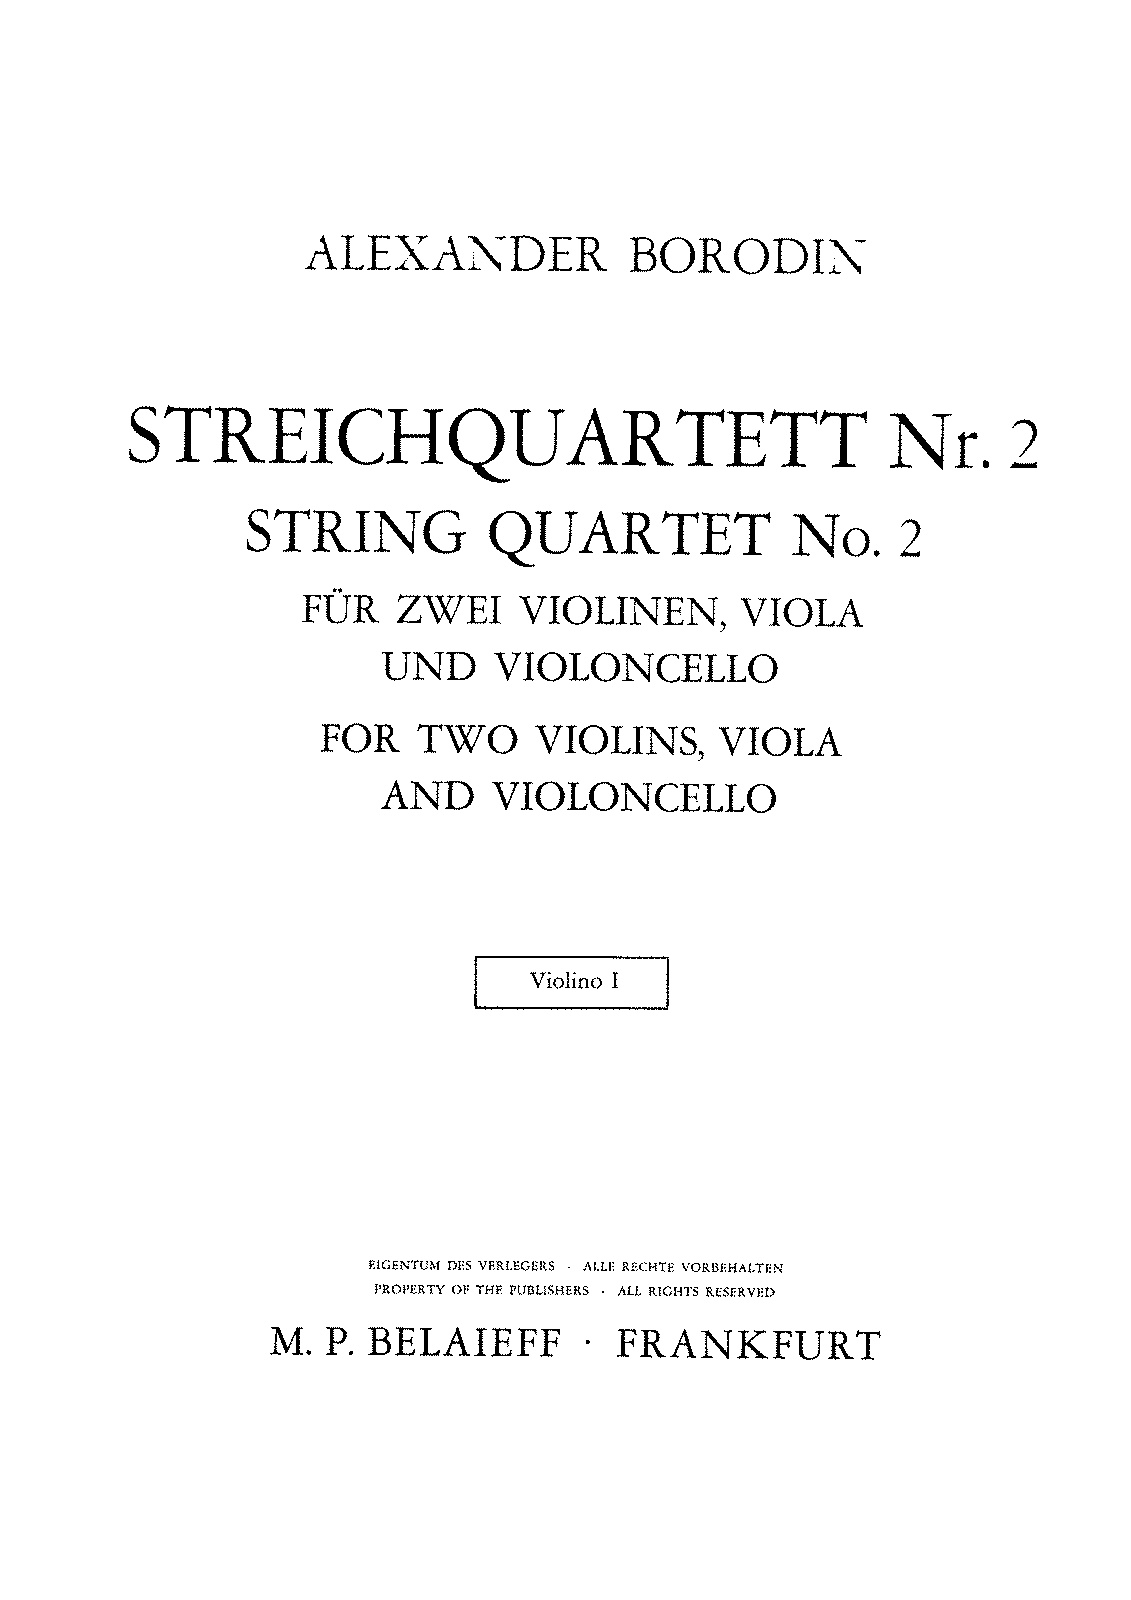 PMLP19373-Borodin - String Quartet No.2 in D Major vn1.PDF